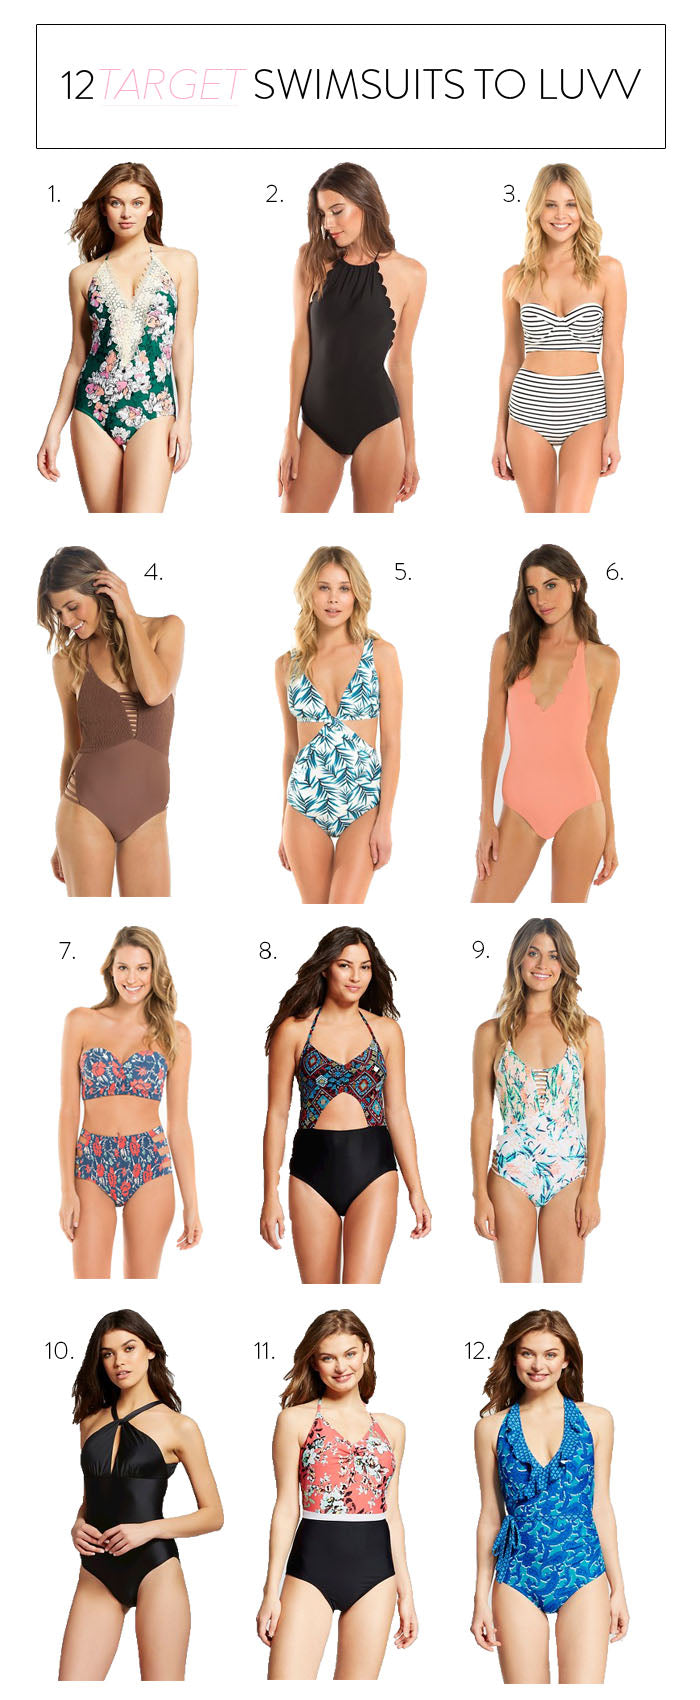 swimwear, swimsuits, one piece swimsuits, target,